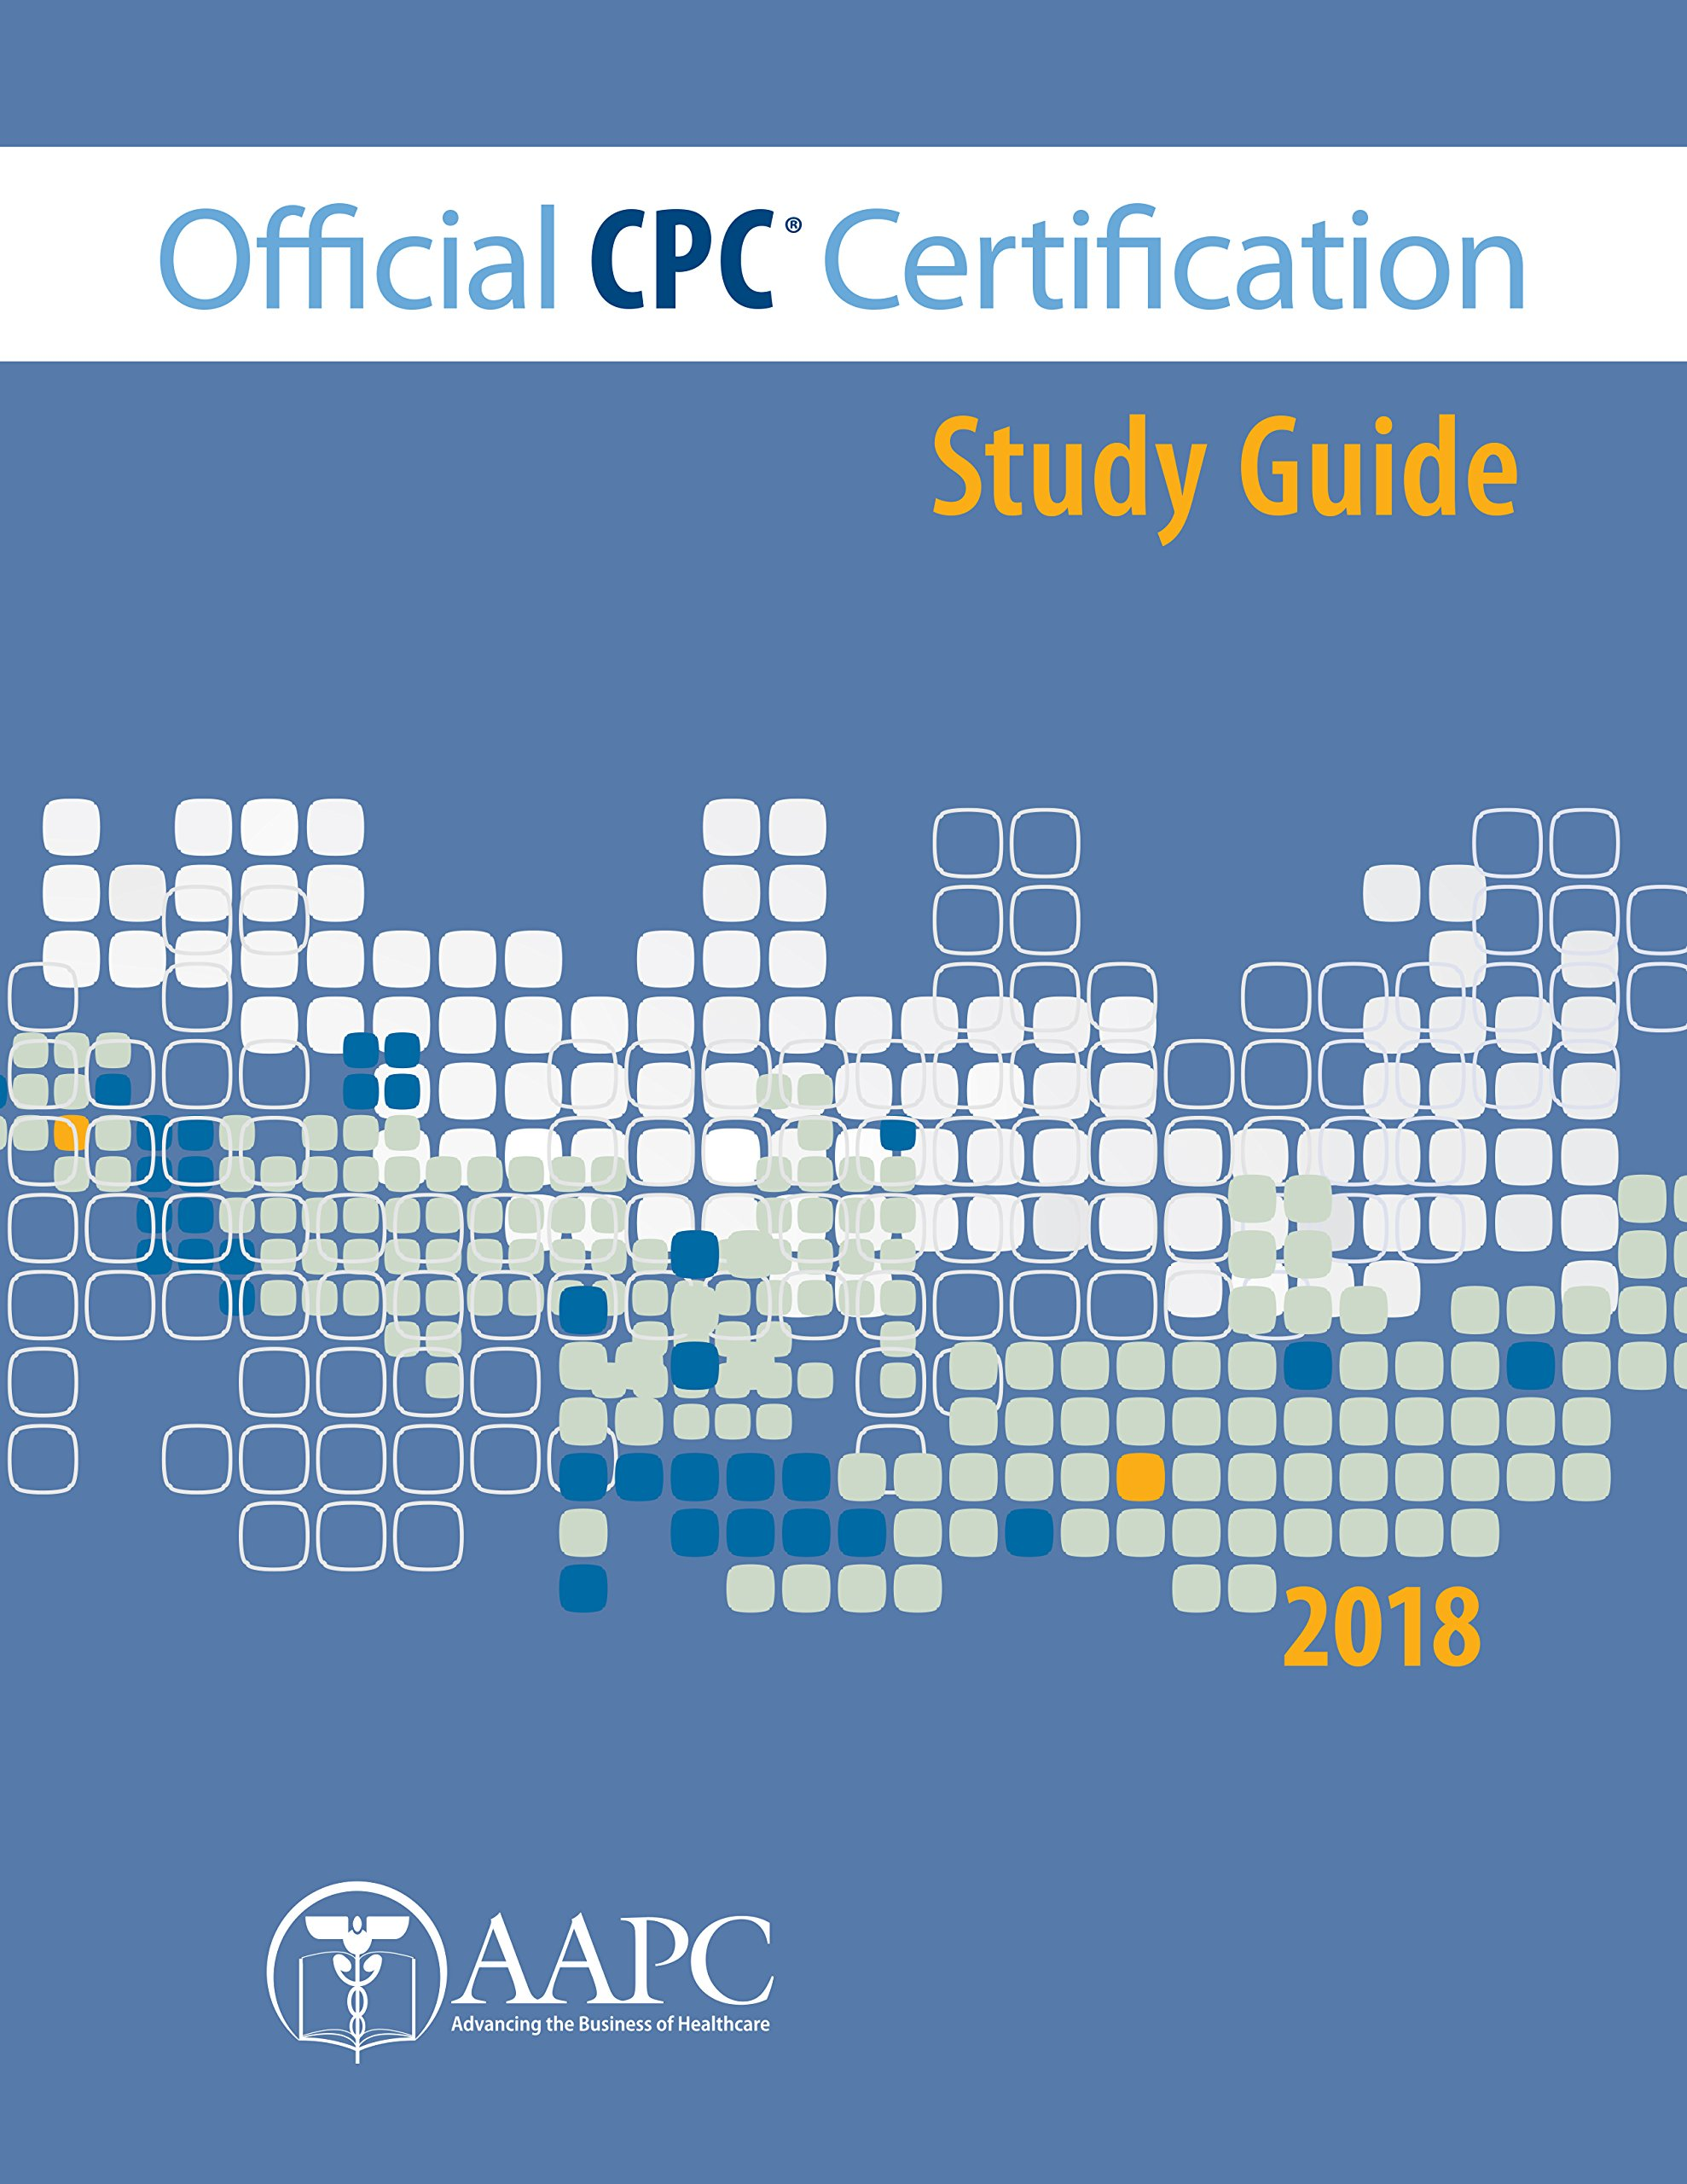 Official CPC Certification 2018 - Study Guide: AAPC